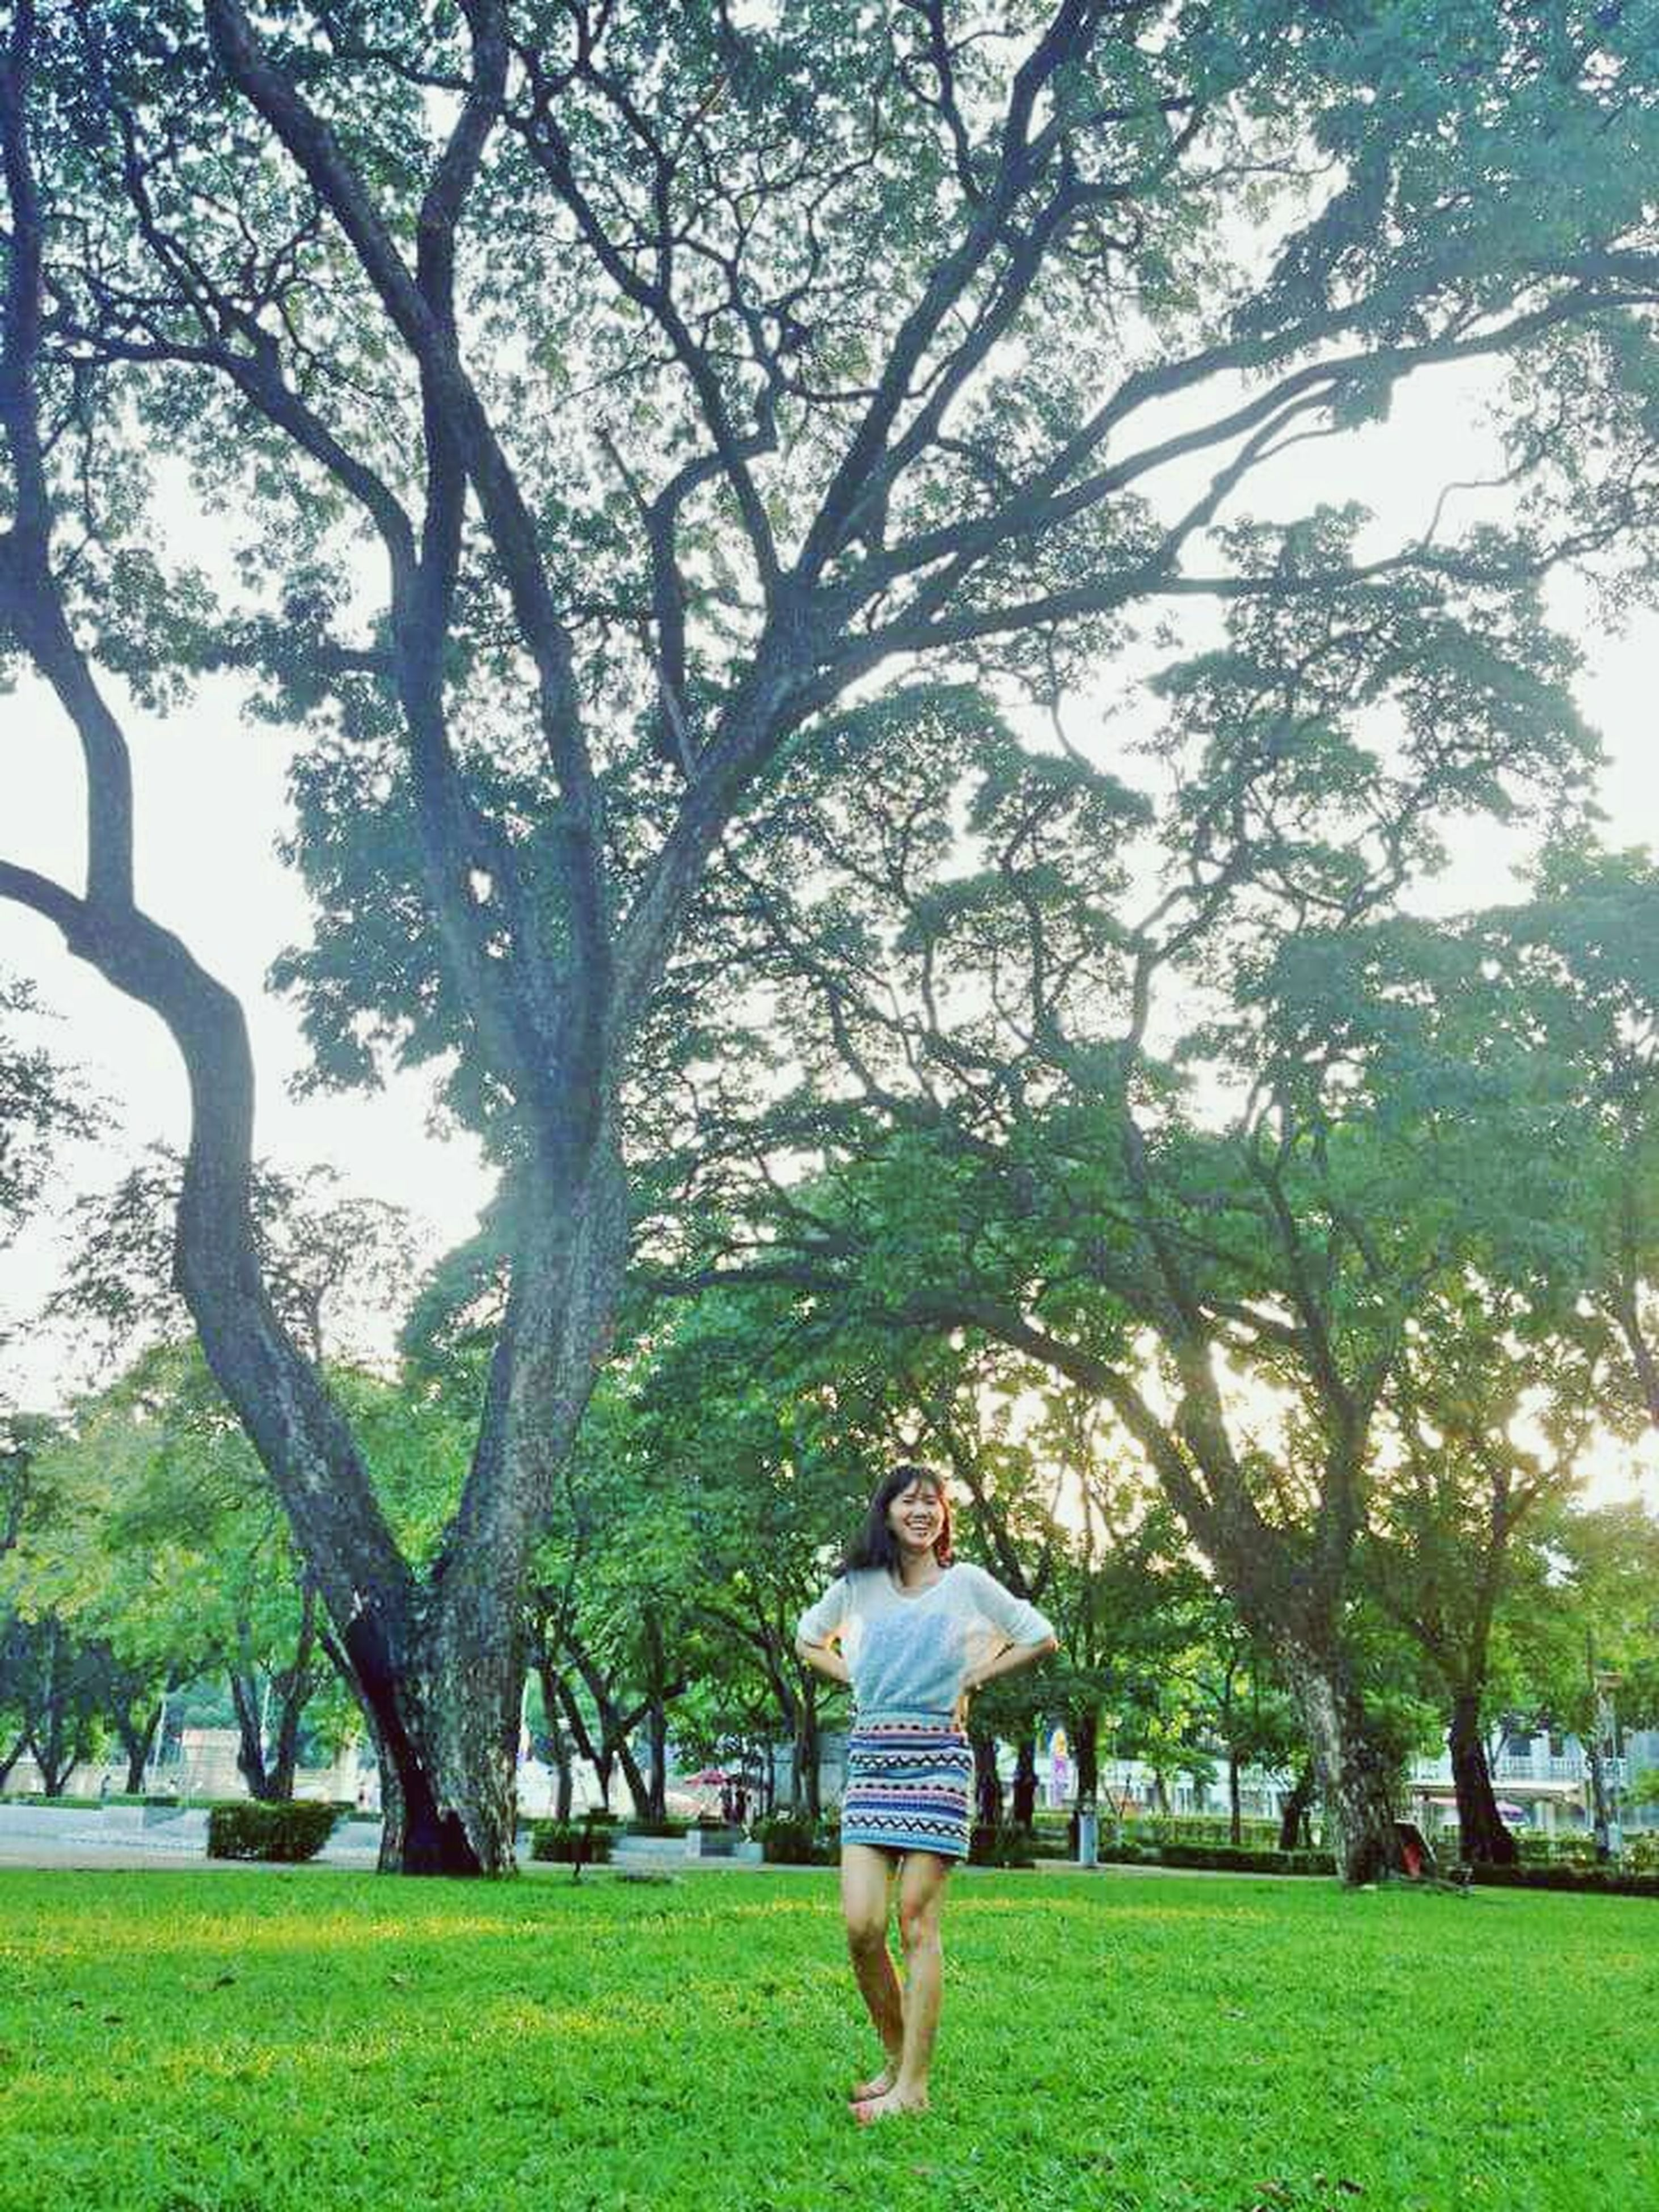 tree, grass, full length, lifestyles, casual clothing, leisure activity, childhood, rear view, park - man made space, girls, green color, elementary age, togetherness, boys, growth, bonding, love